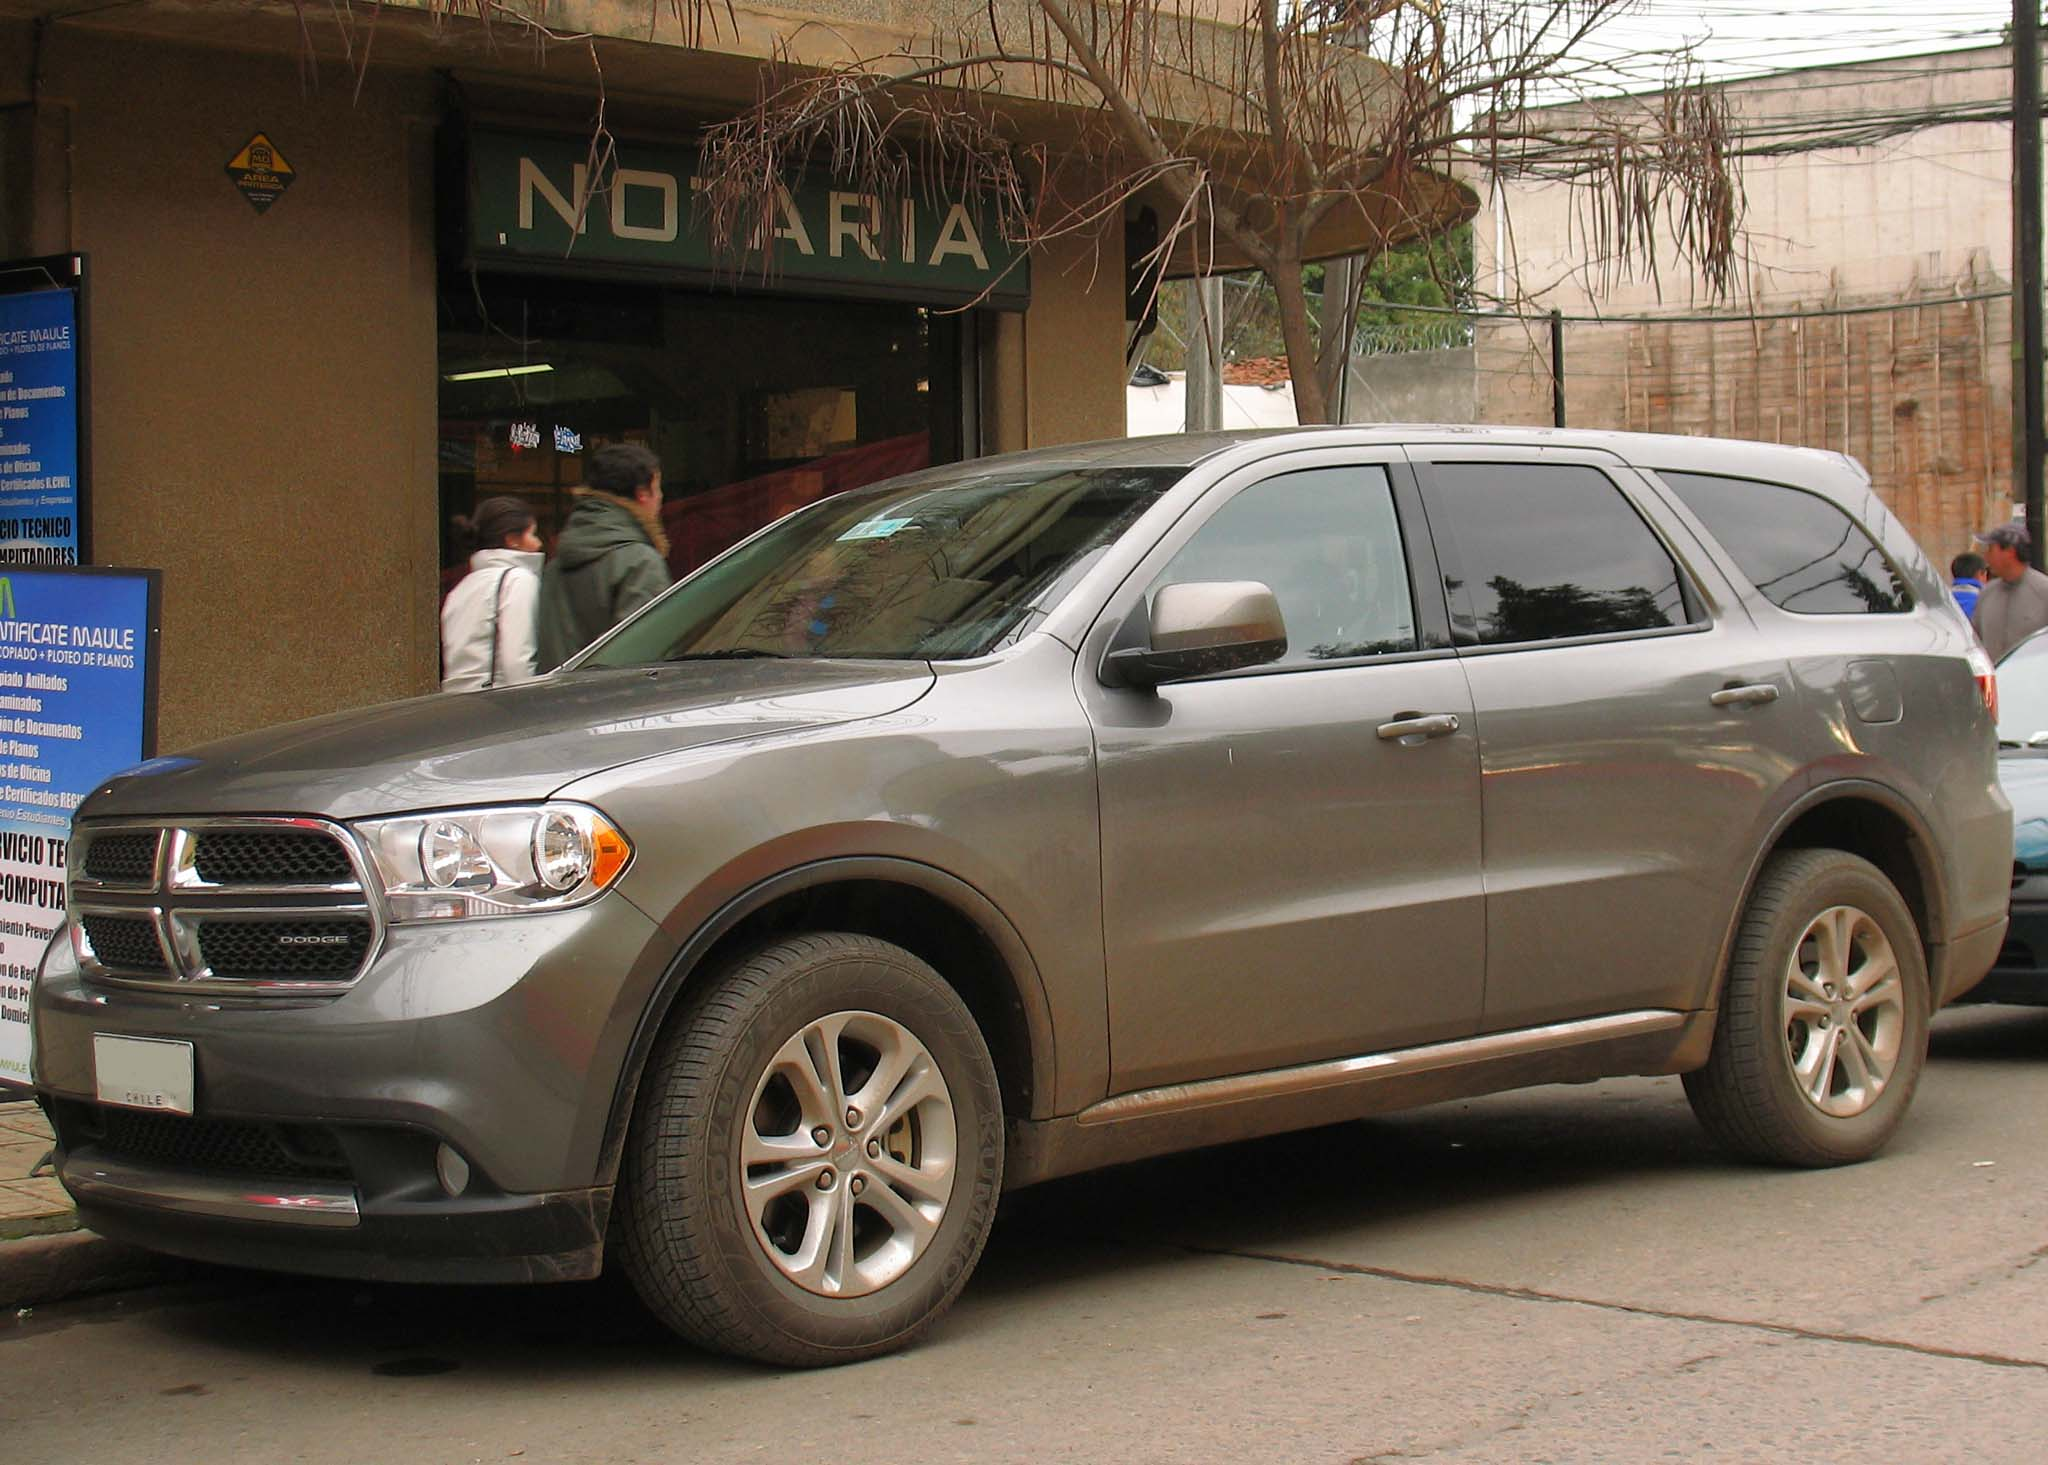 file dodge durango 3 6 express wikimedia commons. Black Bedroom Furniture Sets. Home Design Ideas